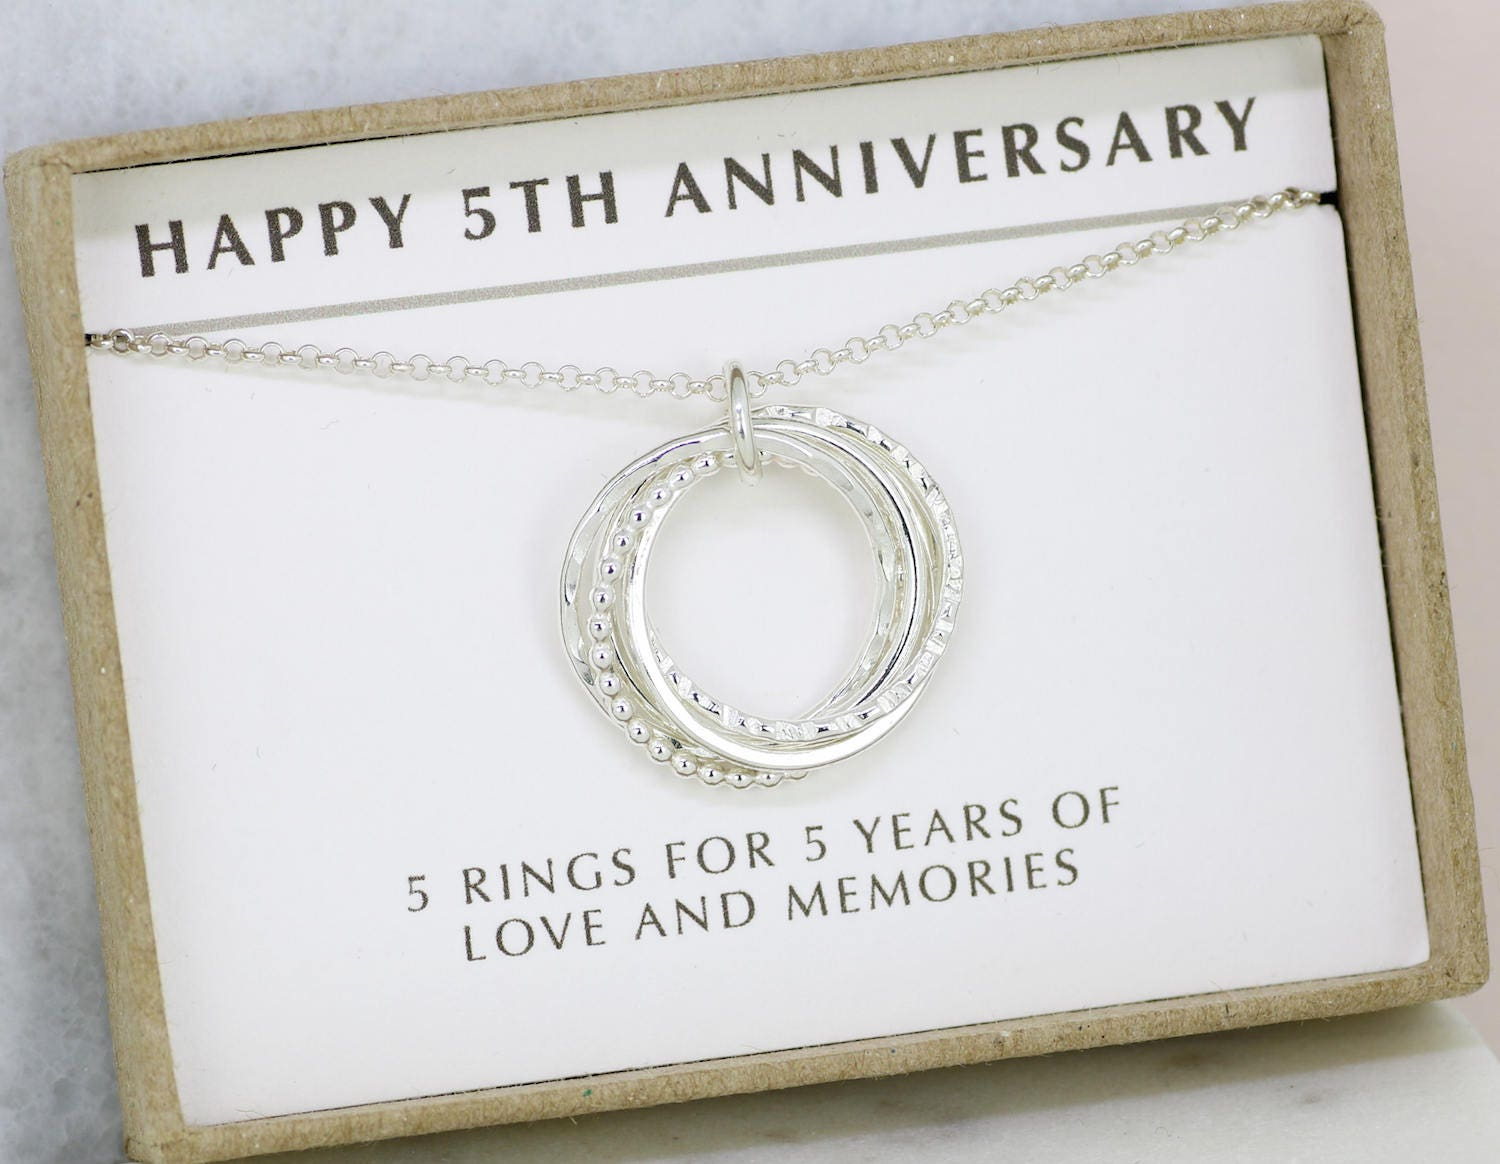 5th Wedding Anniversary Traditional Gifts: 5th Anniversary Gift 5 Year Anniversary Necklace Gift For